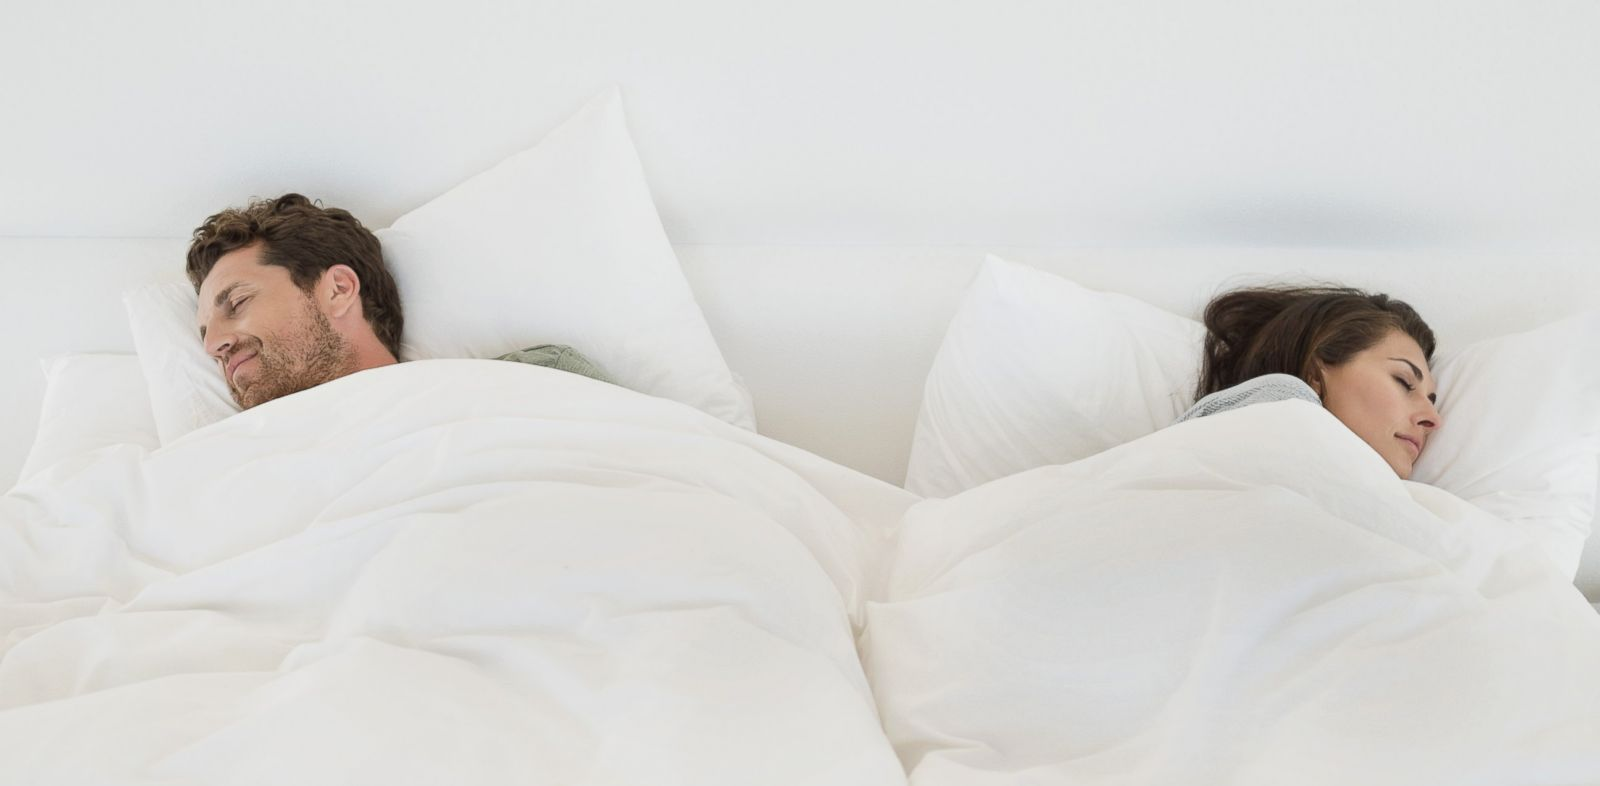 PHOTO: In this stock image, a couple is pictured sleeping in bed.